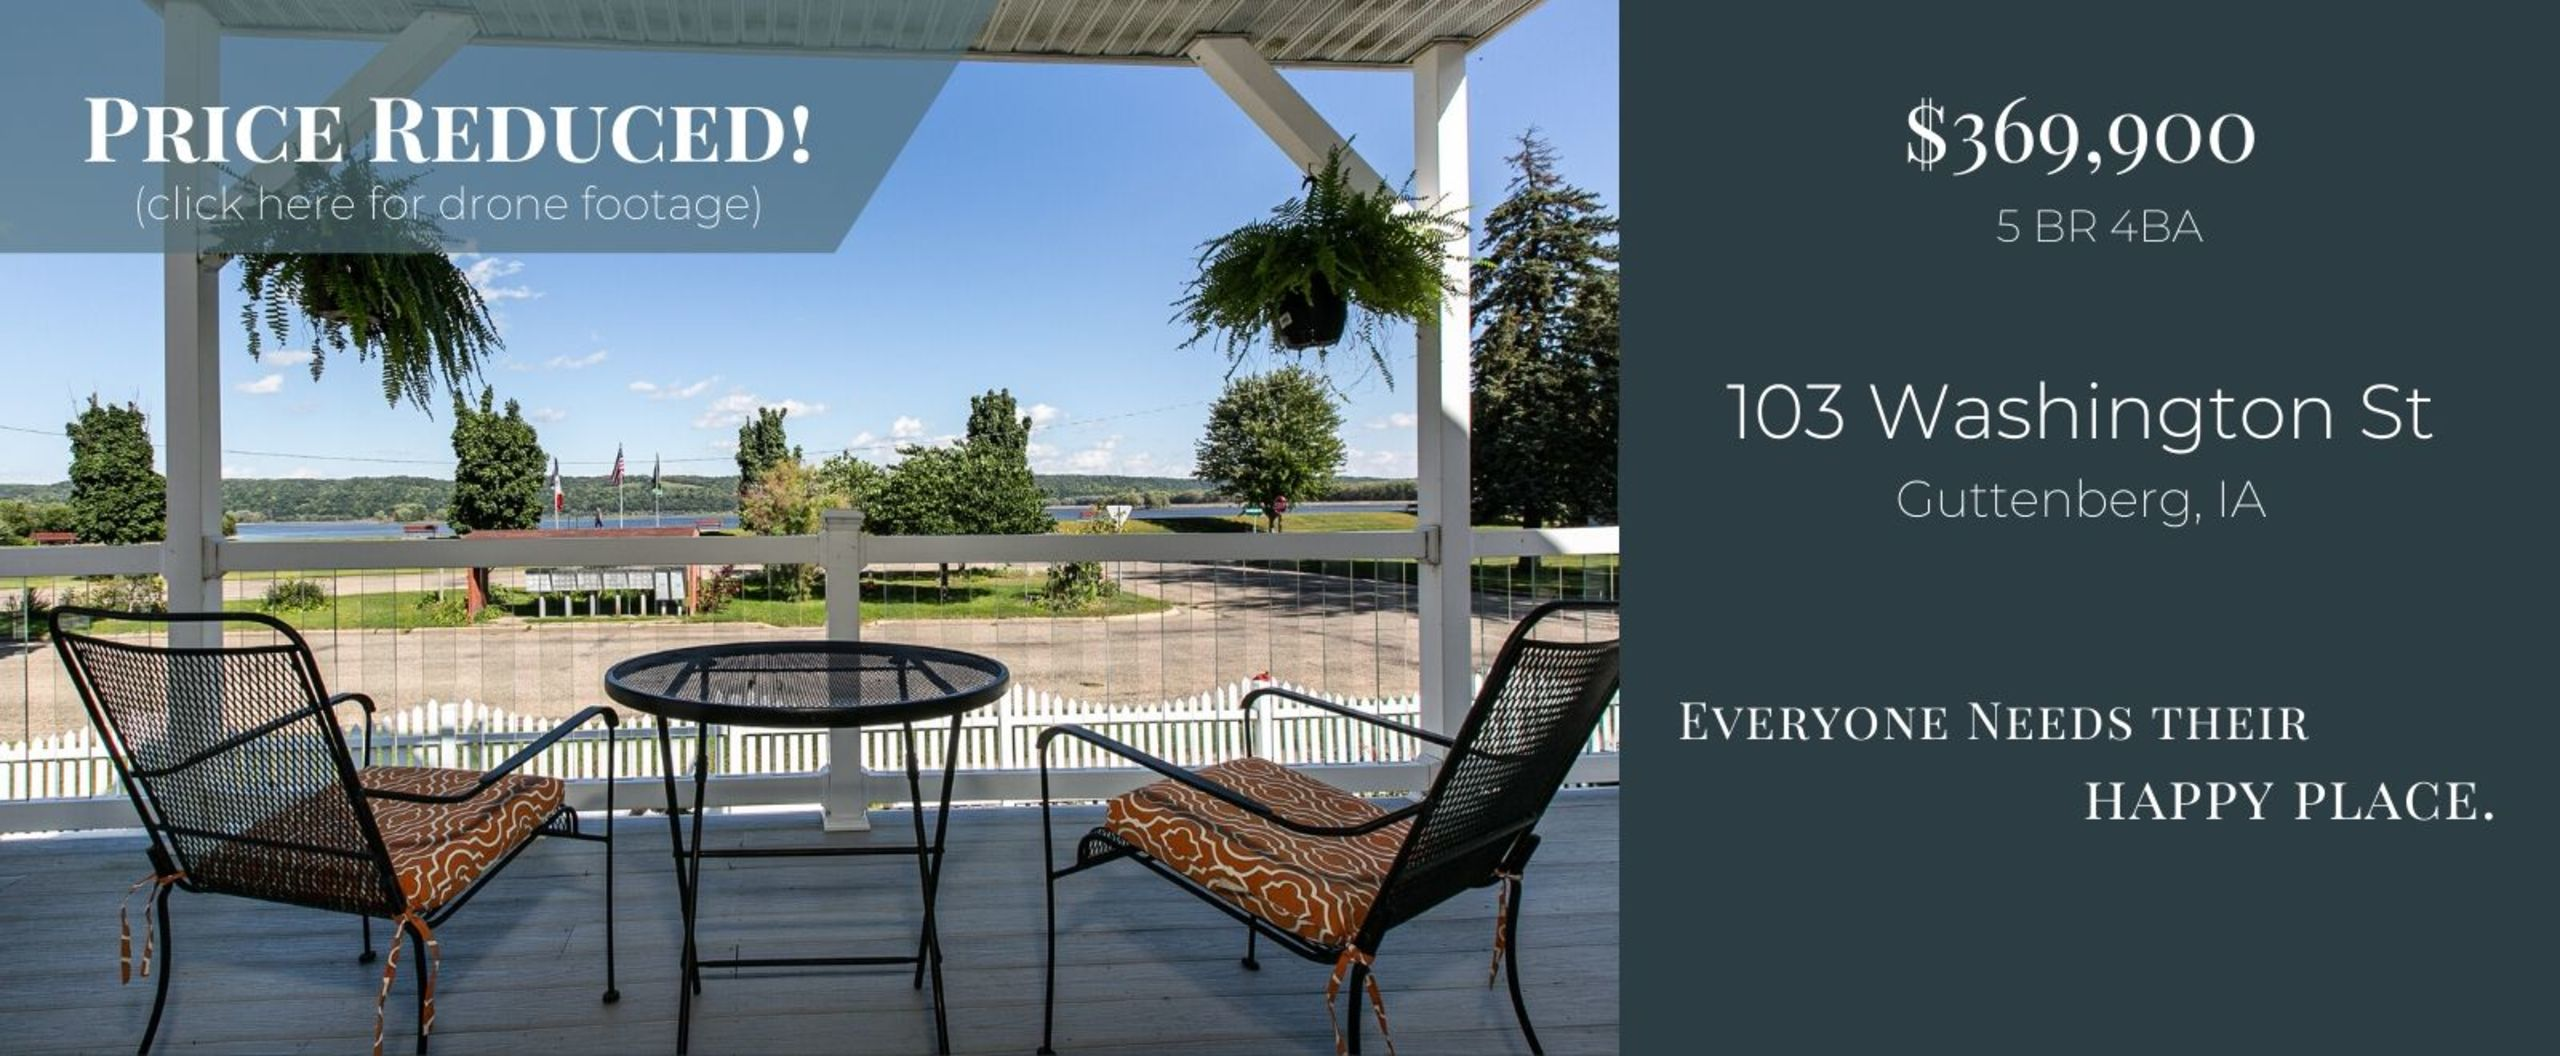 Call Jonna to see your dream home today!  563.580.7522